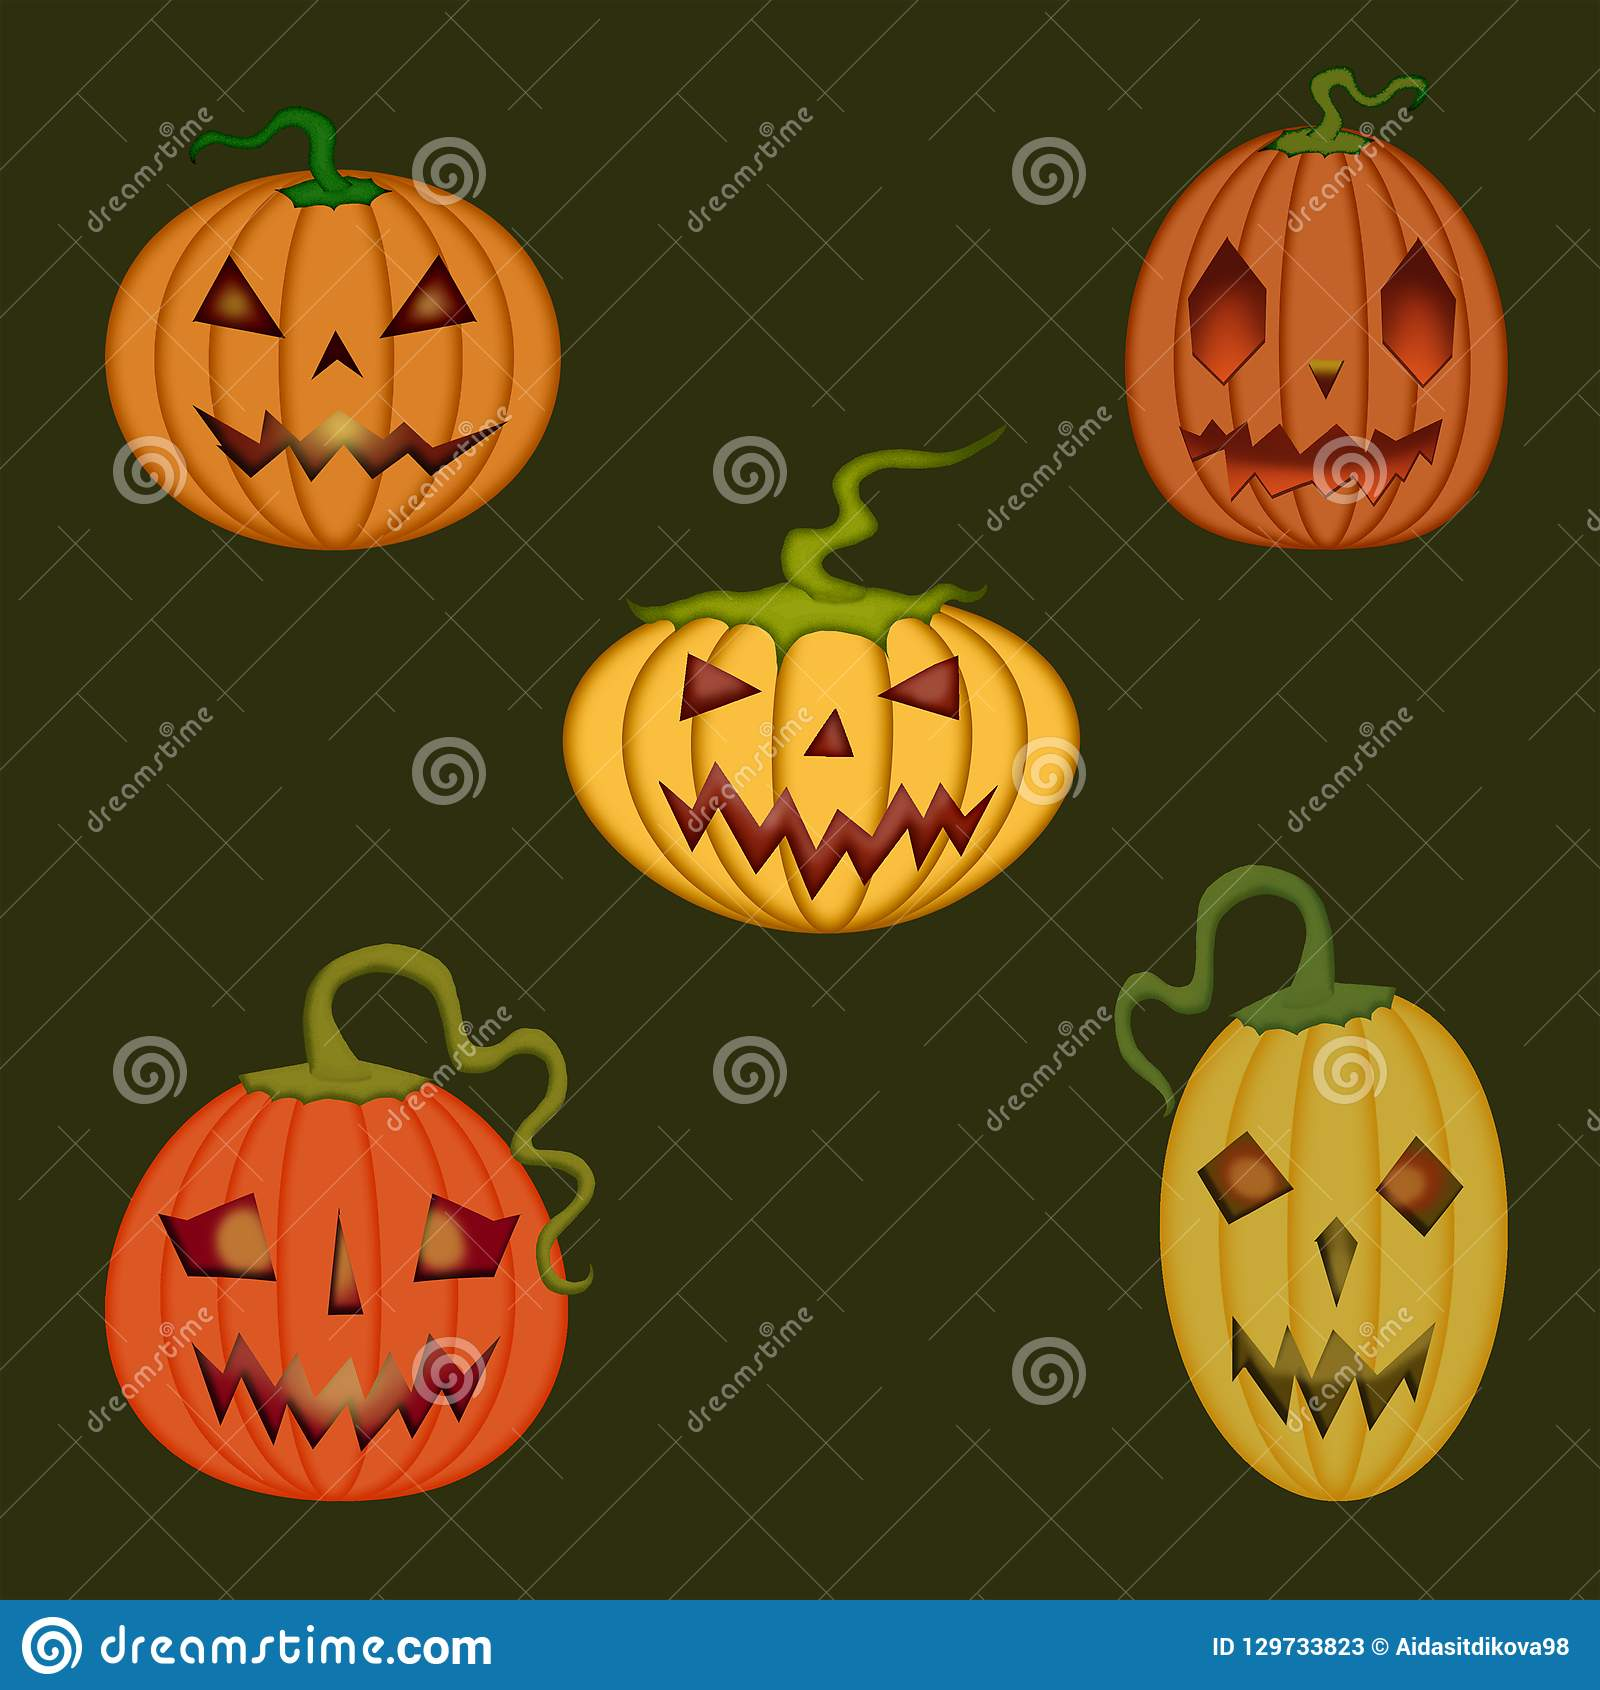 Halloween holiday, scary and cute pumpkins